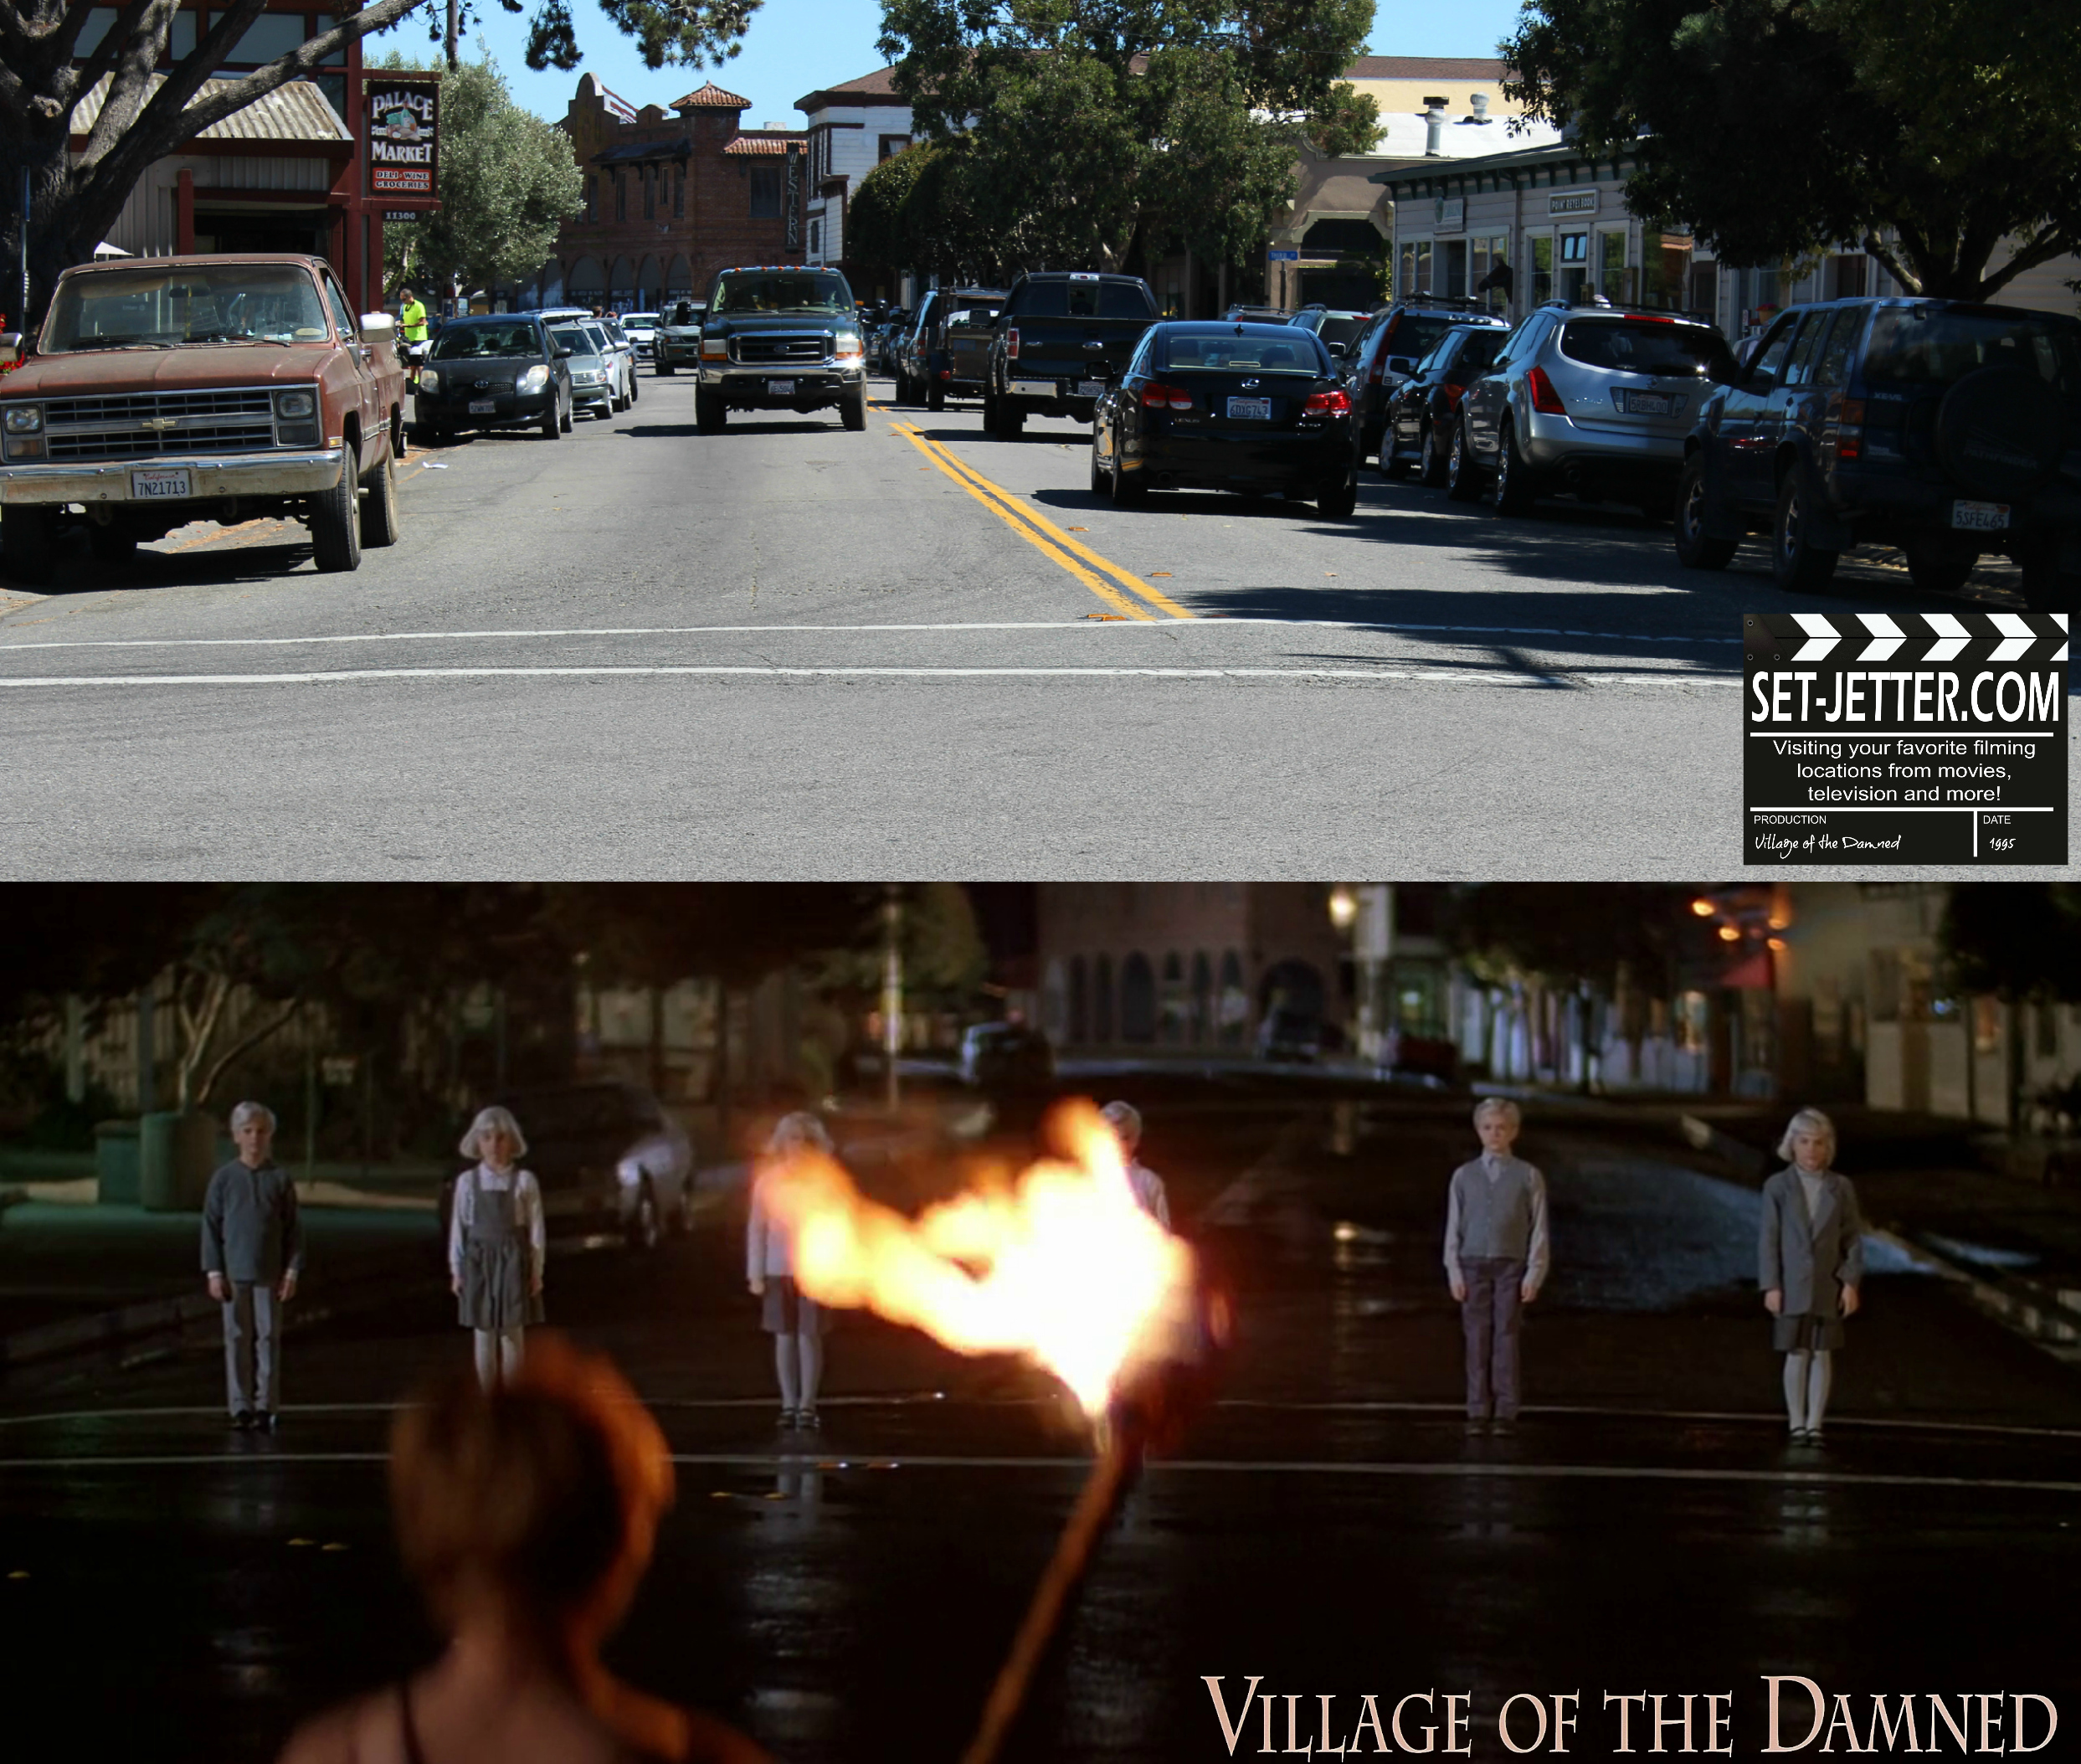 Village of the Damned comparison 226.jpg